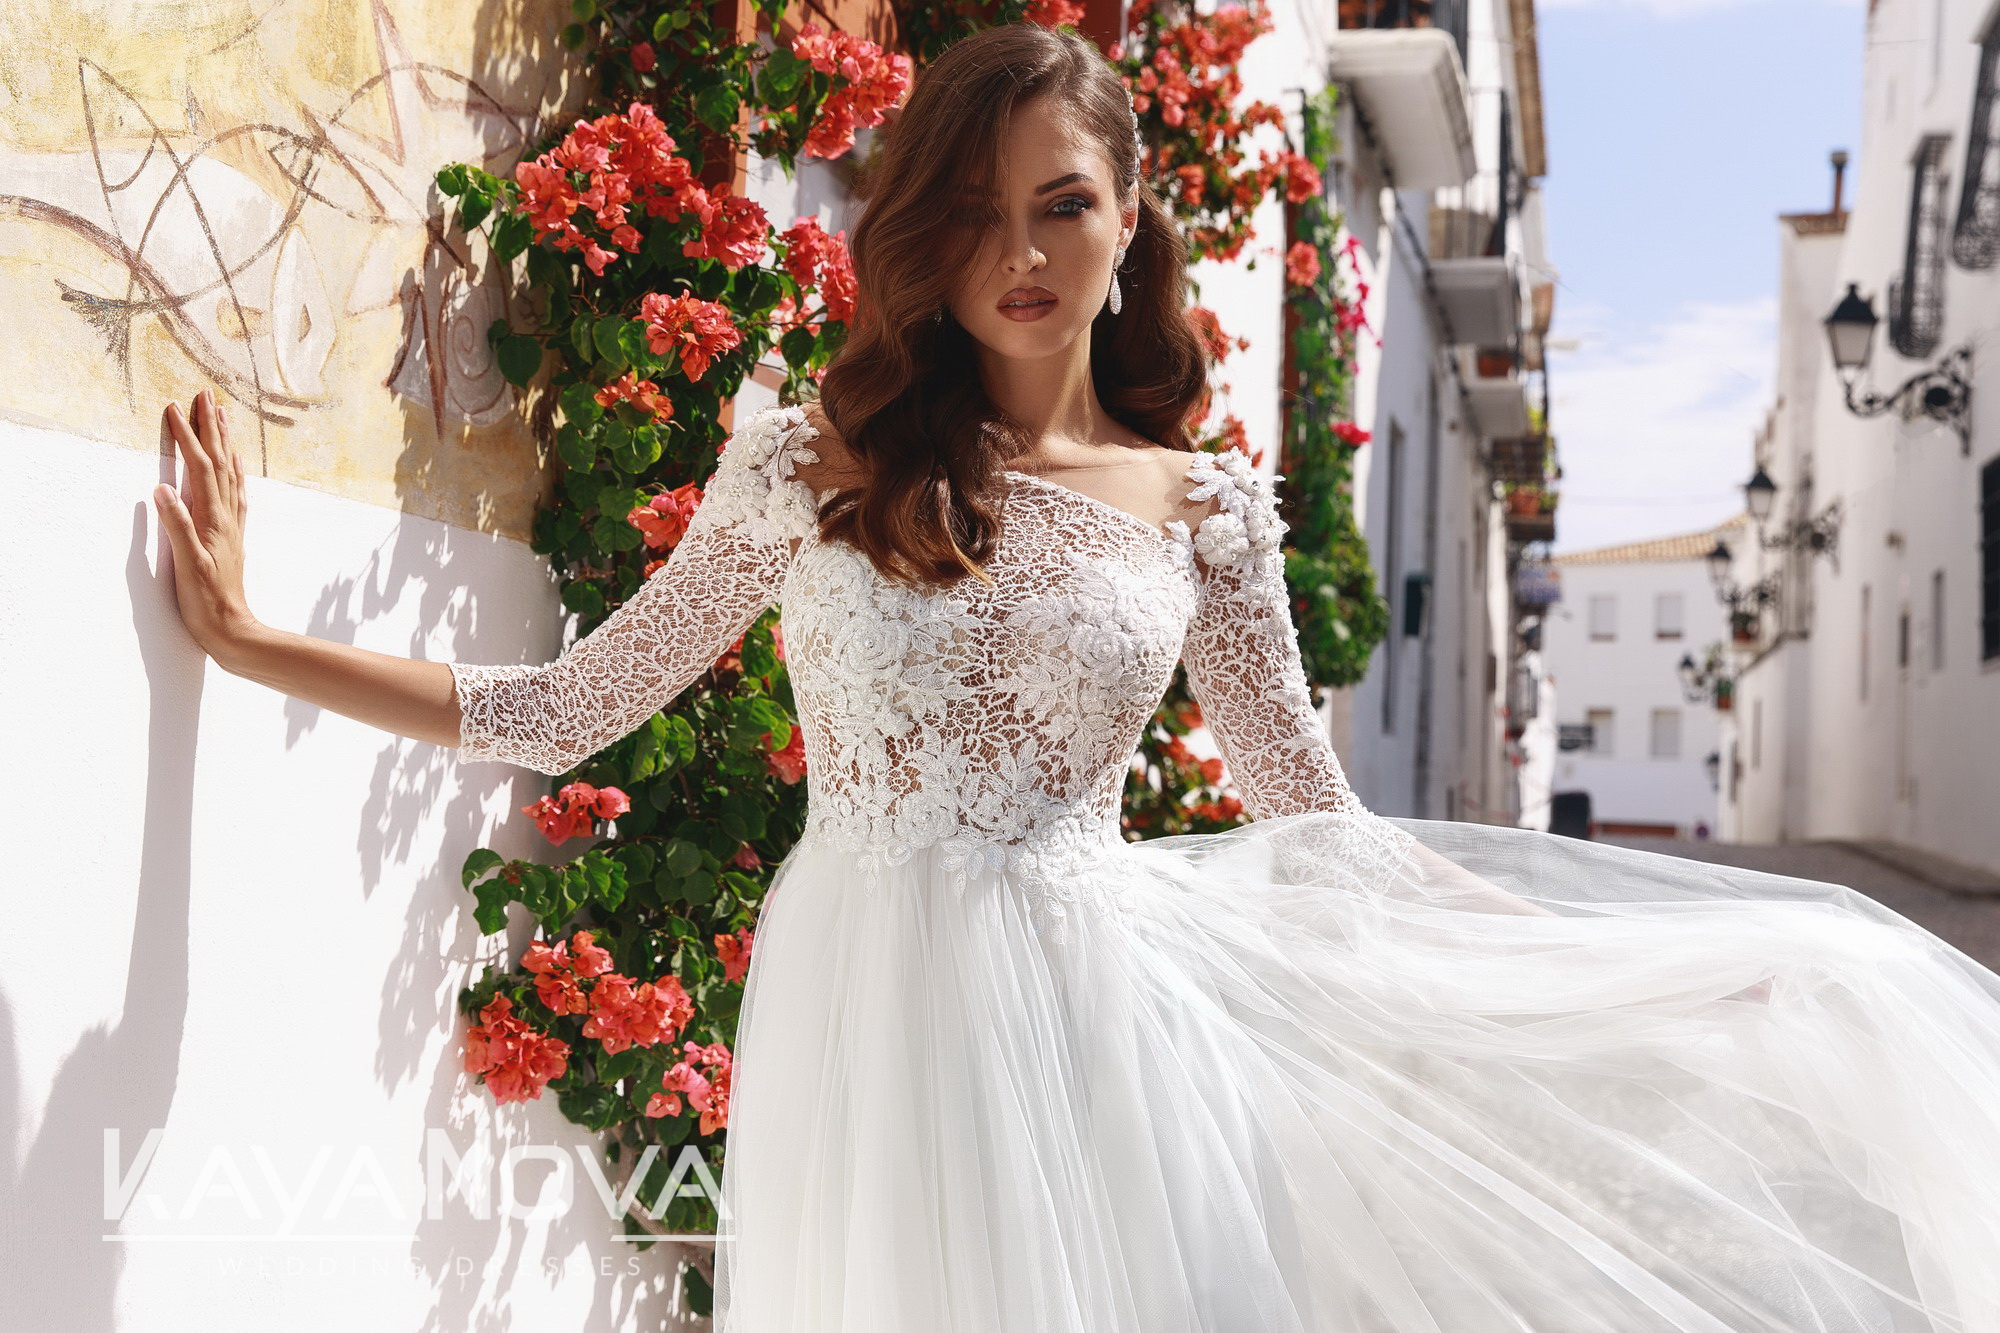 https://kayawedding.com/images/stories/virtuemart/product/Azalia 1.jpg